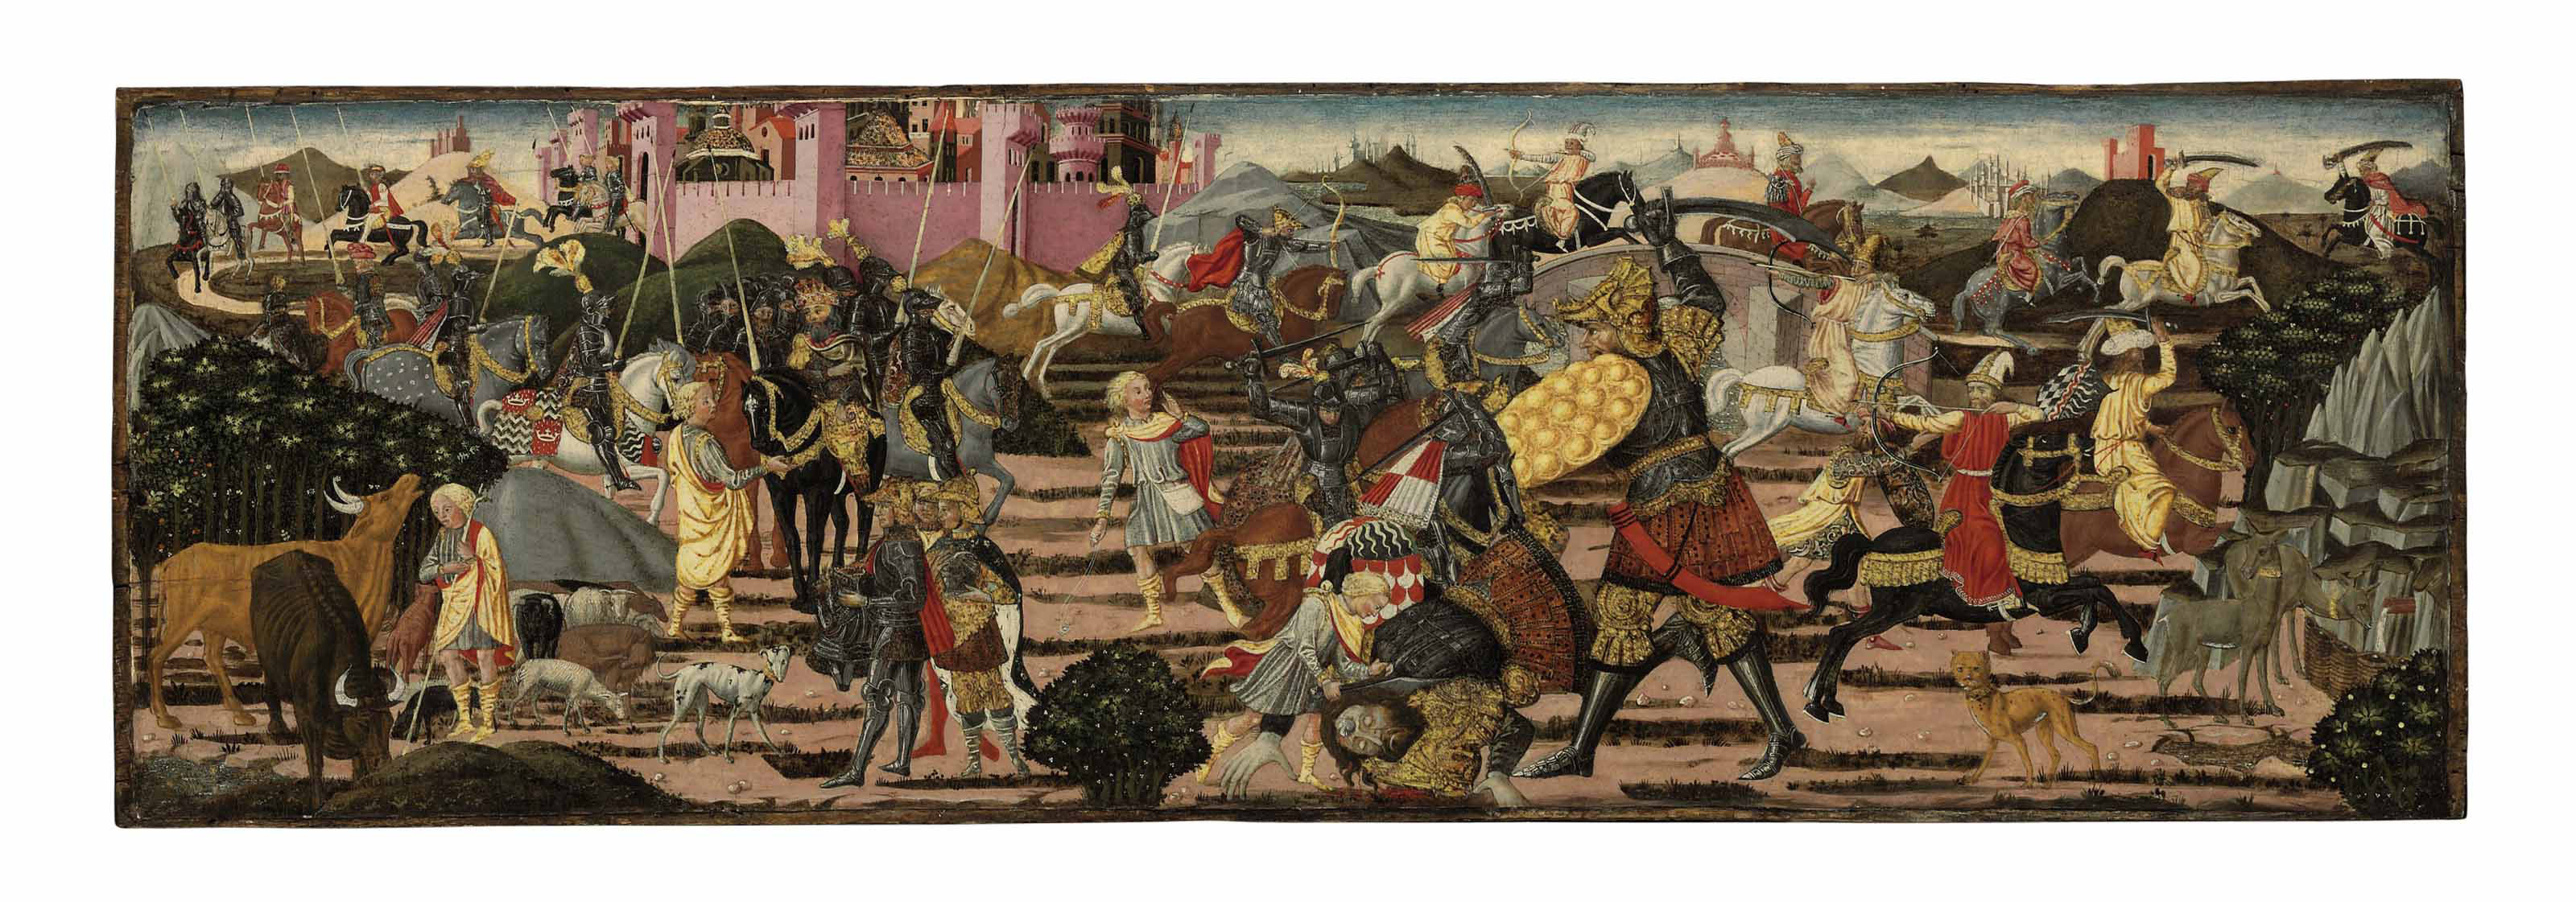 The slaying of Goliath: a cassone front